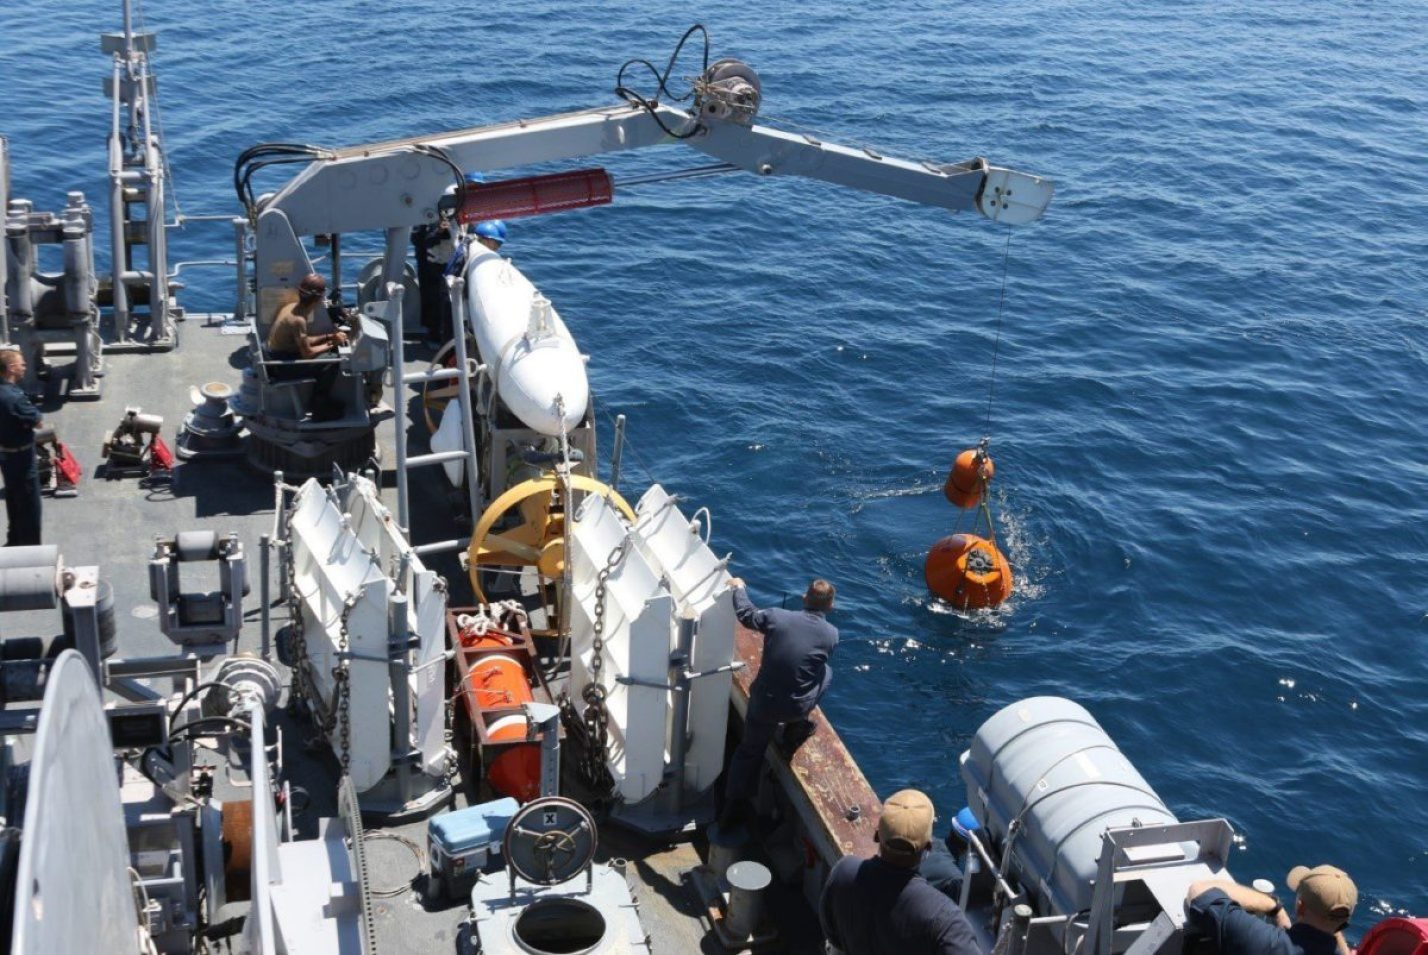 Sailors aboard USS Warrior (MCM 10) deploy a Mine Neutralization Vehicle while conducting mine hunting operations during 2JA Mine Warfare Exercise (MIWEX) in Mutsu Bay, Japan. 2JA MIWEX is an annual bilateral exercise between the U.S. Navy and Japan Maritime Self-Defense Force to strengthen interoperability and increase proficiency in mine countermeasure operations (courtesy photo)